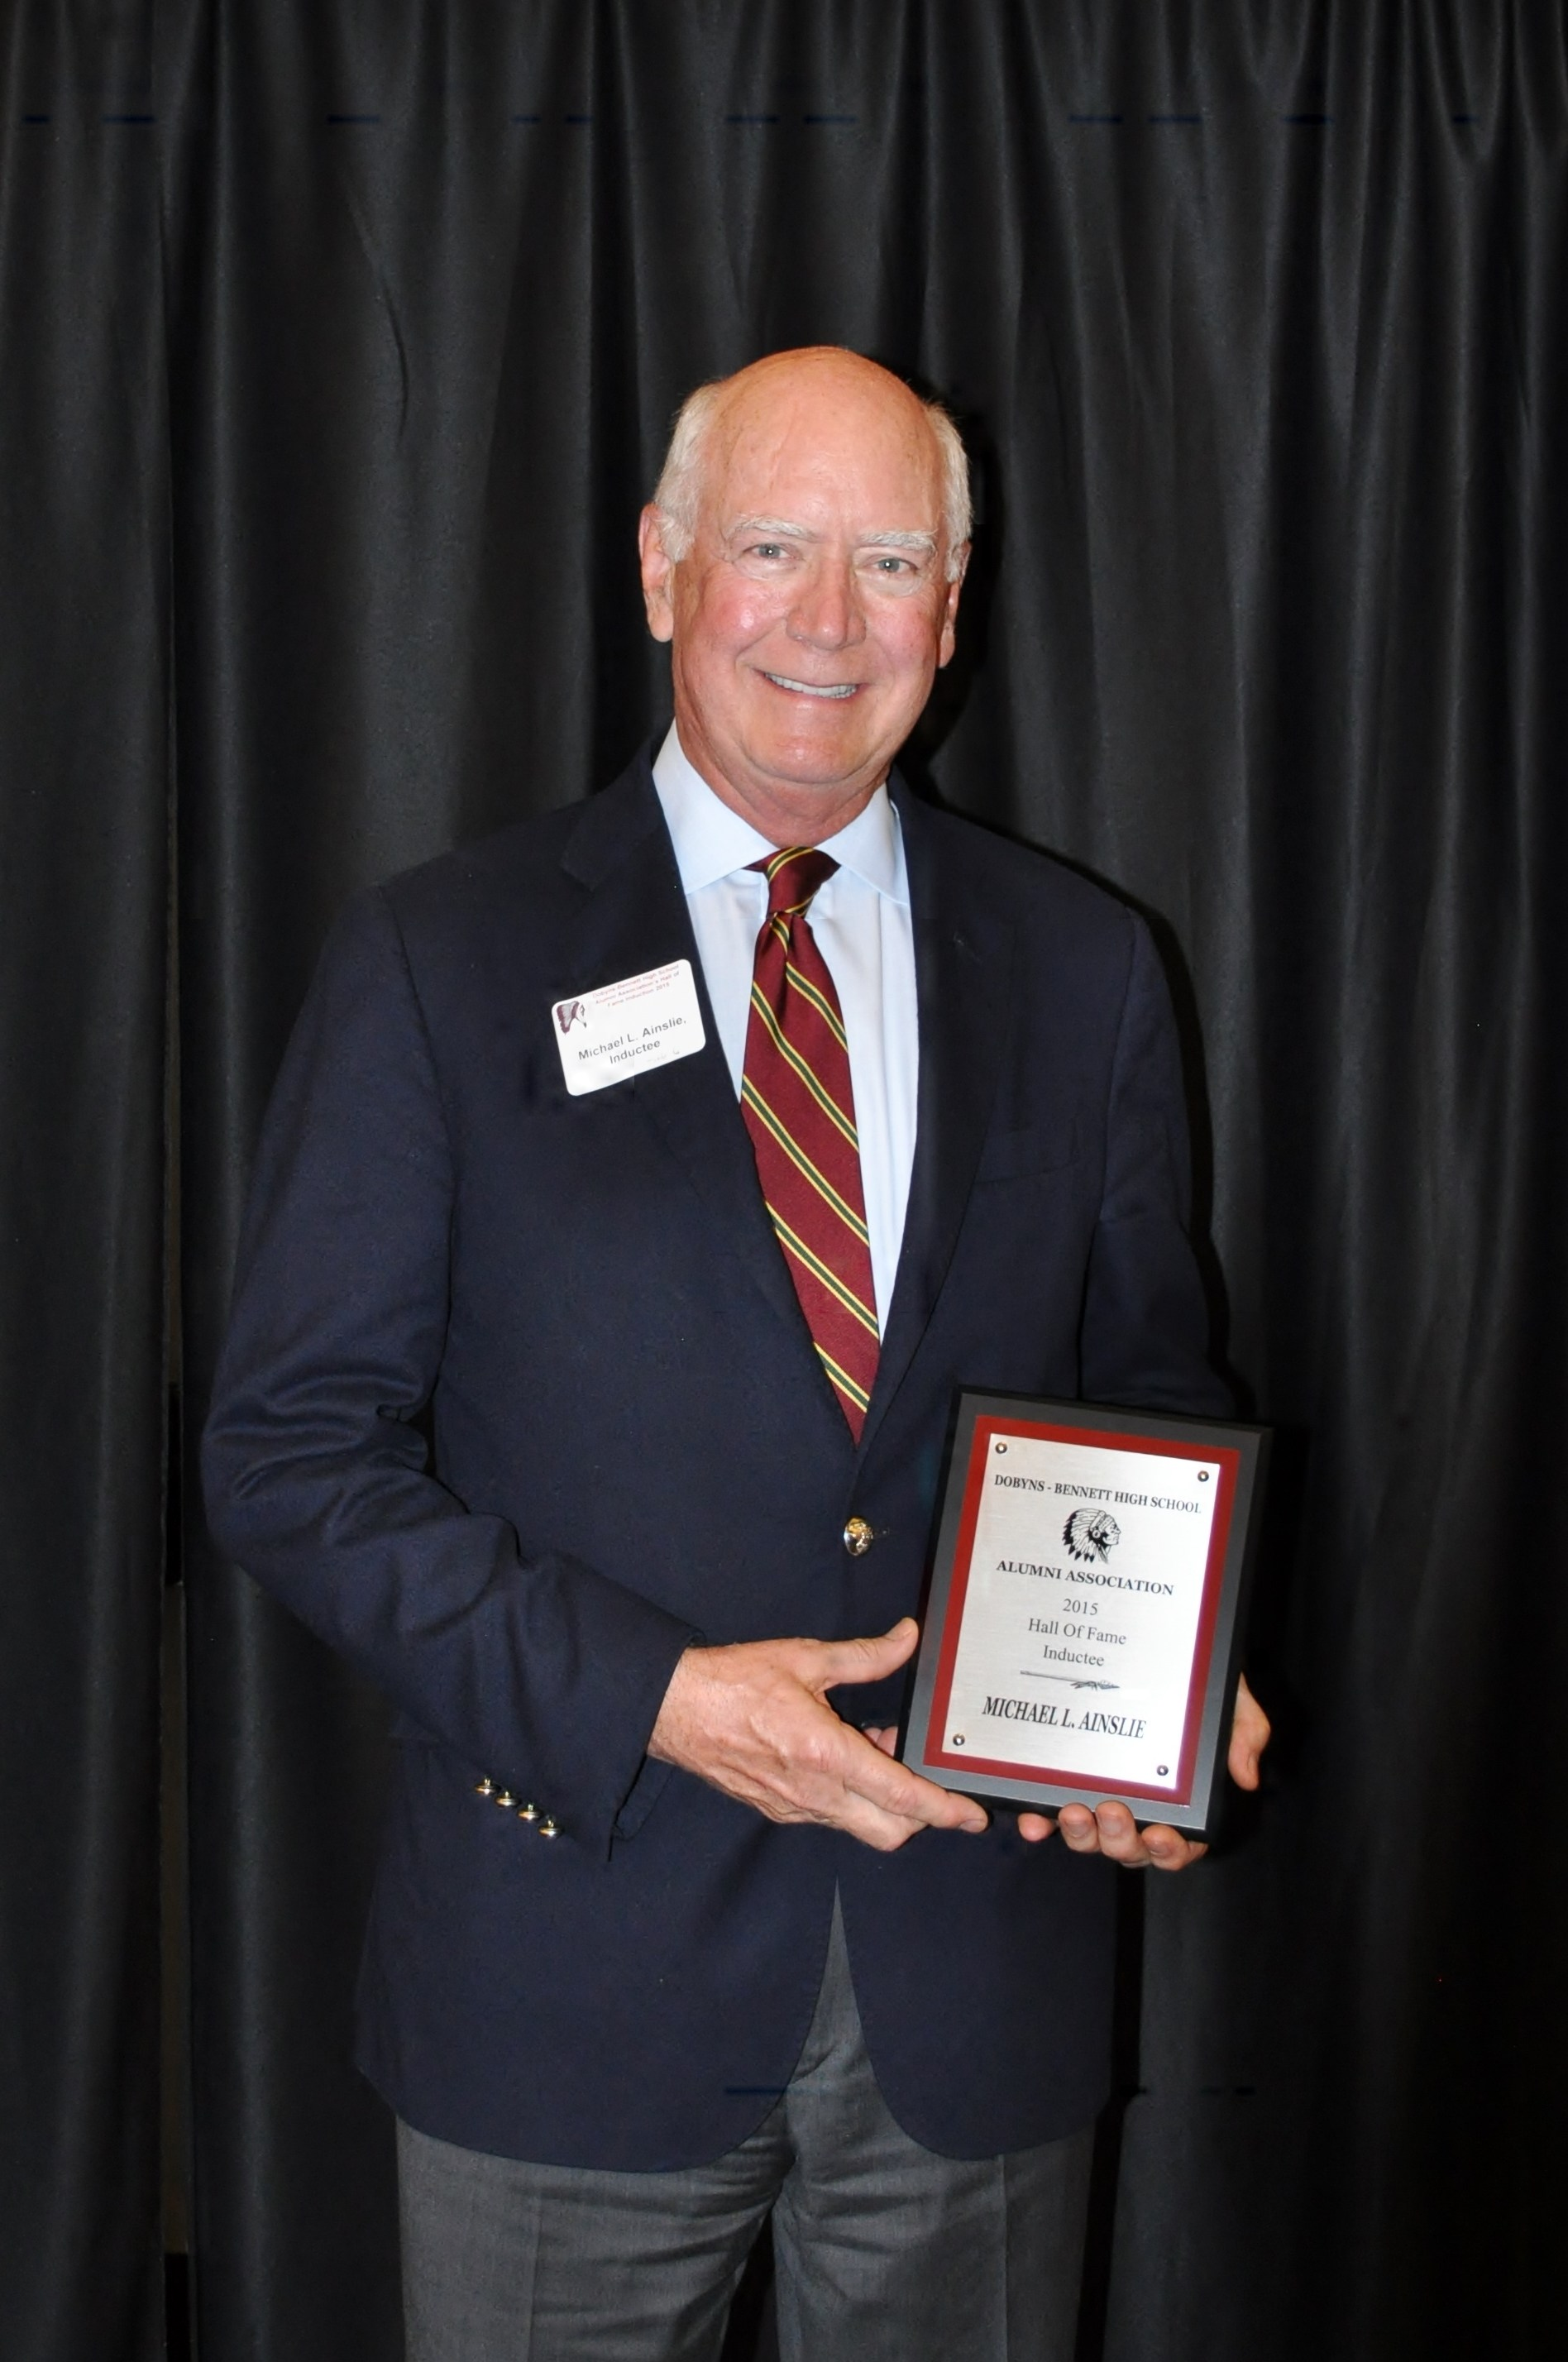 7th Annual Dobyns-Bennett Alumni Hall of Fame Inductee: Michael Ainslie – Class of 1961